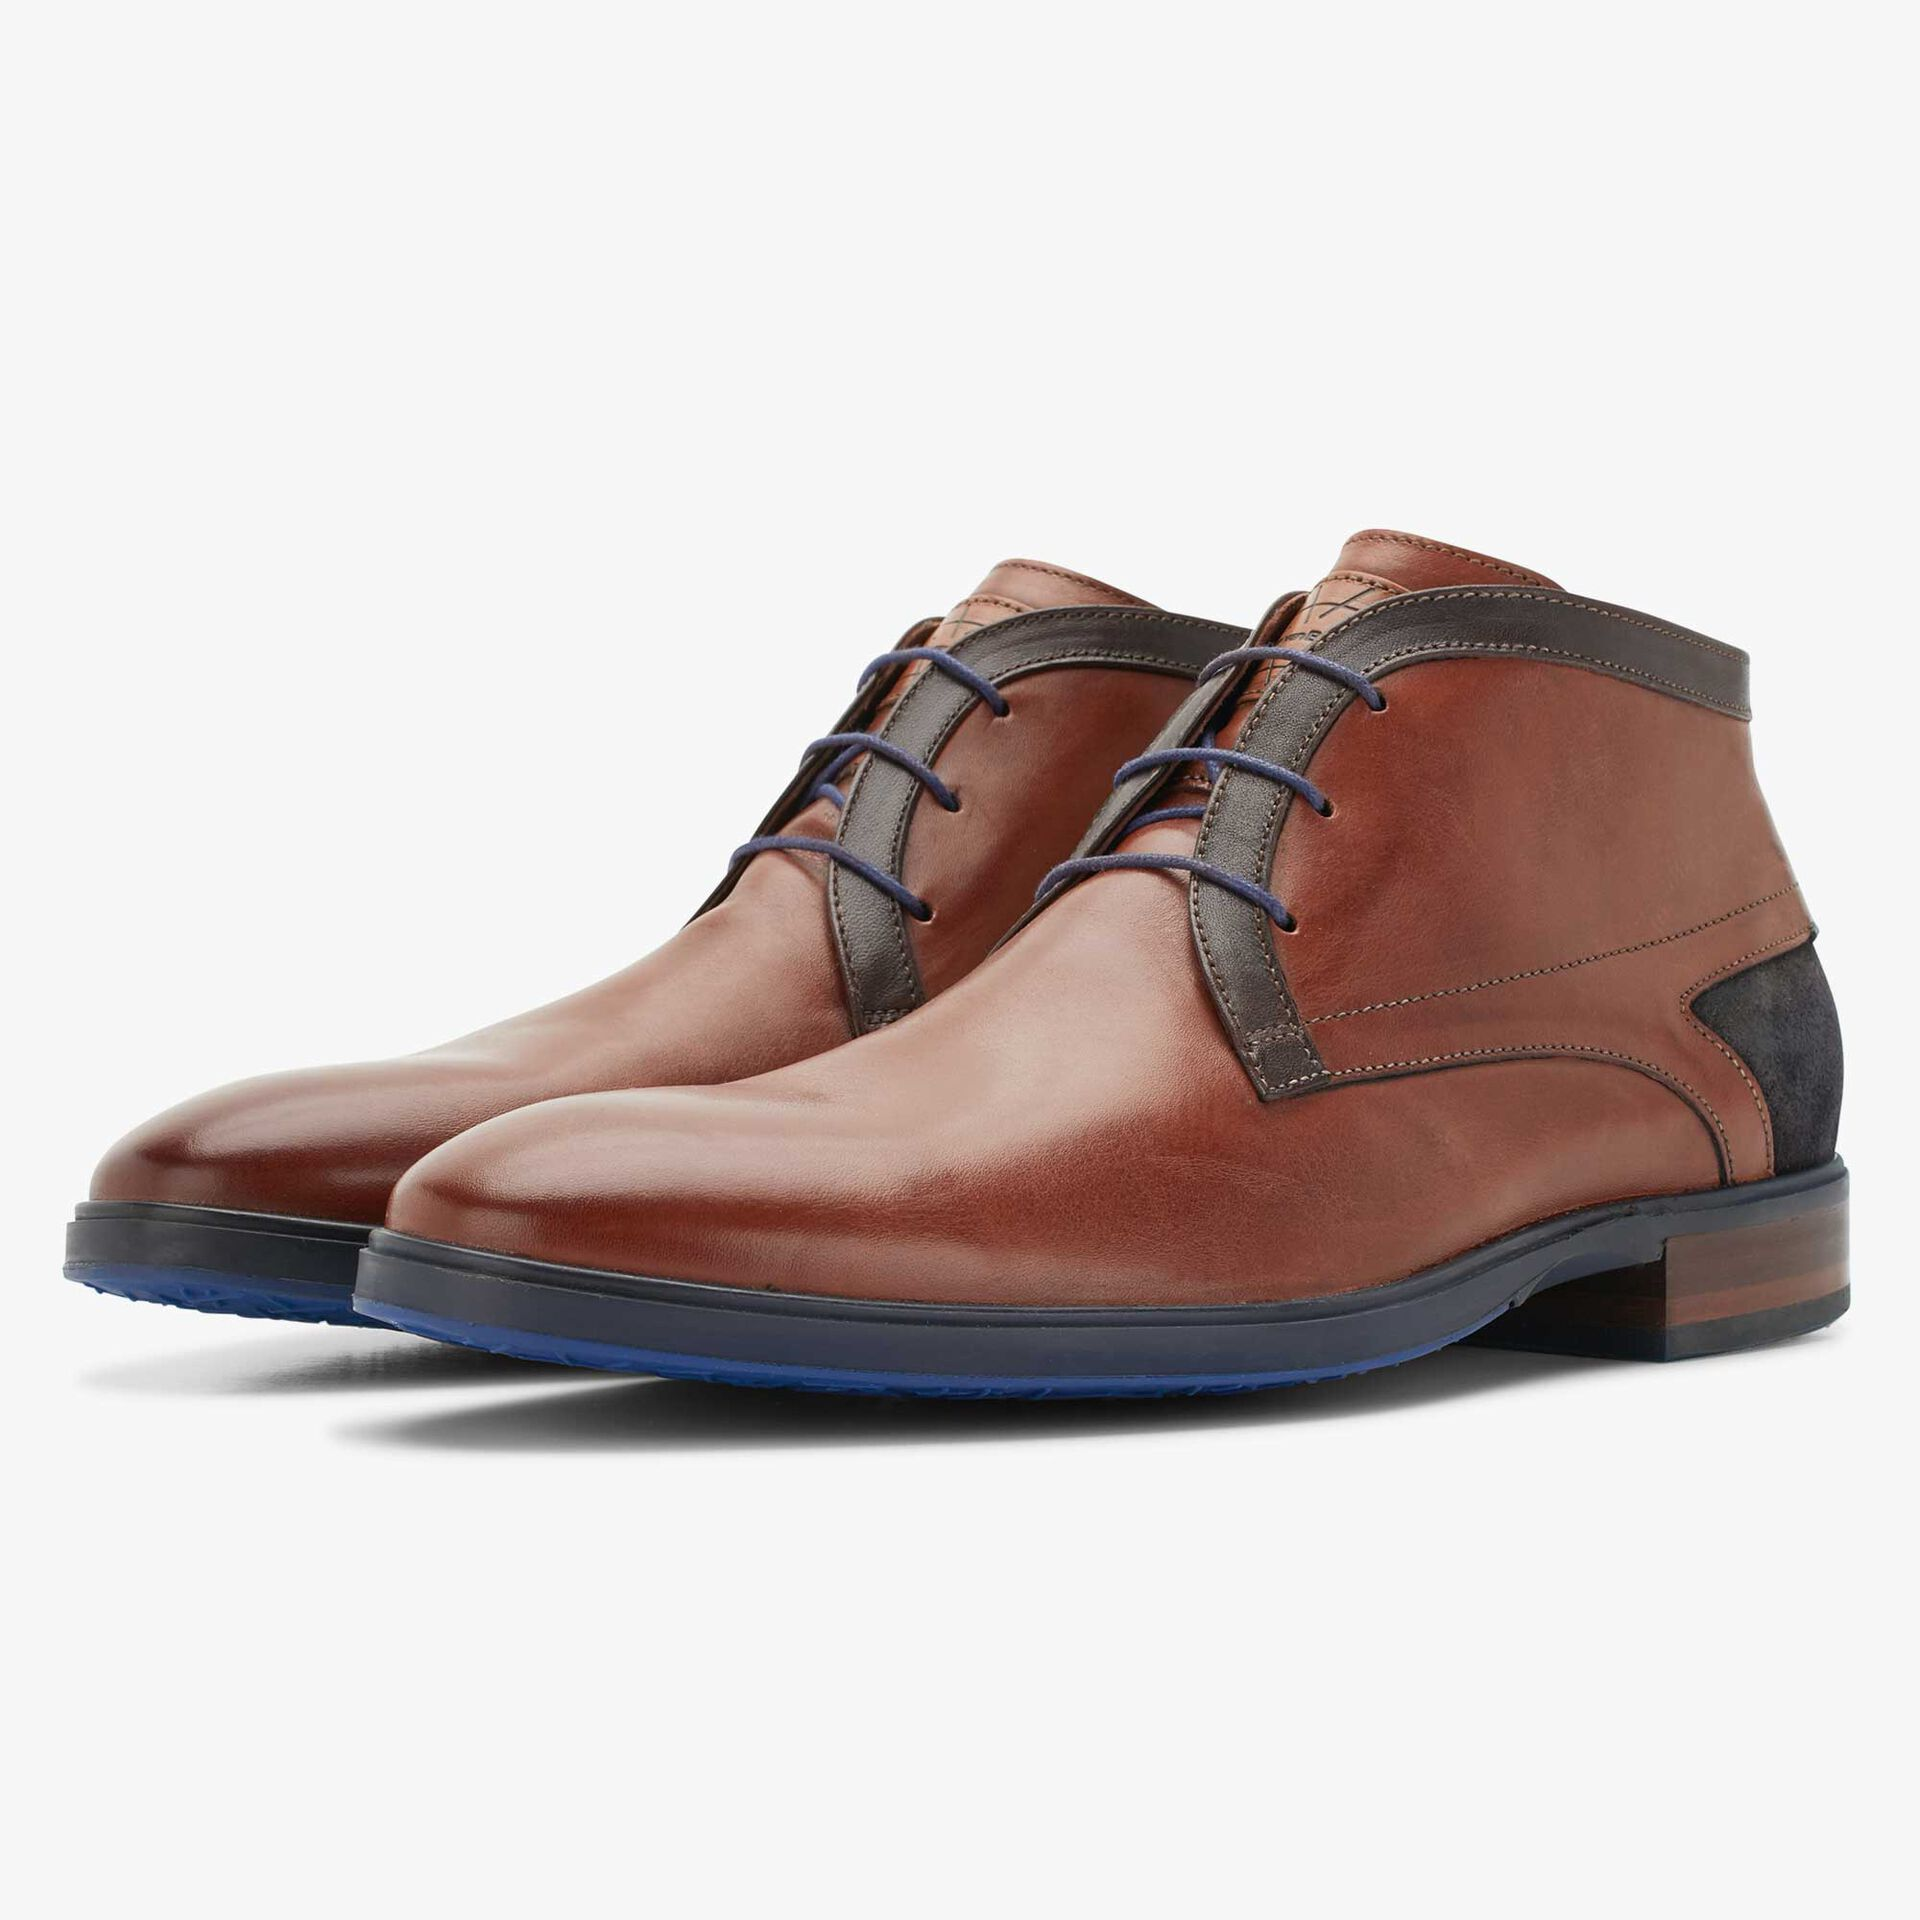 Floris van Bommel cognac-coloured men's leather lace boot